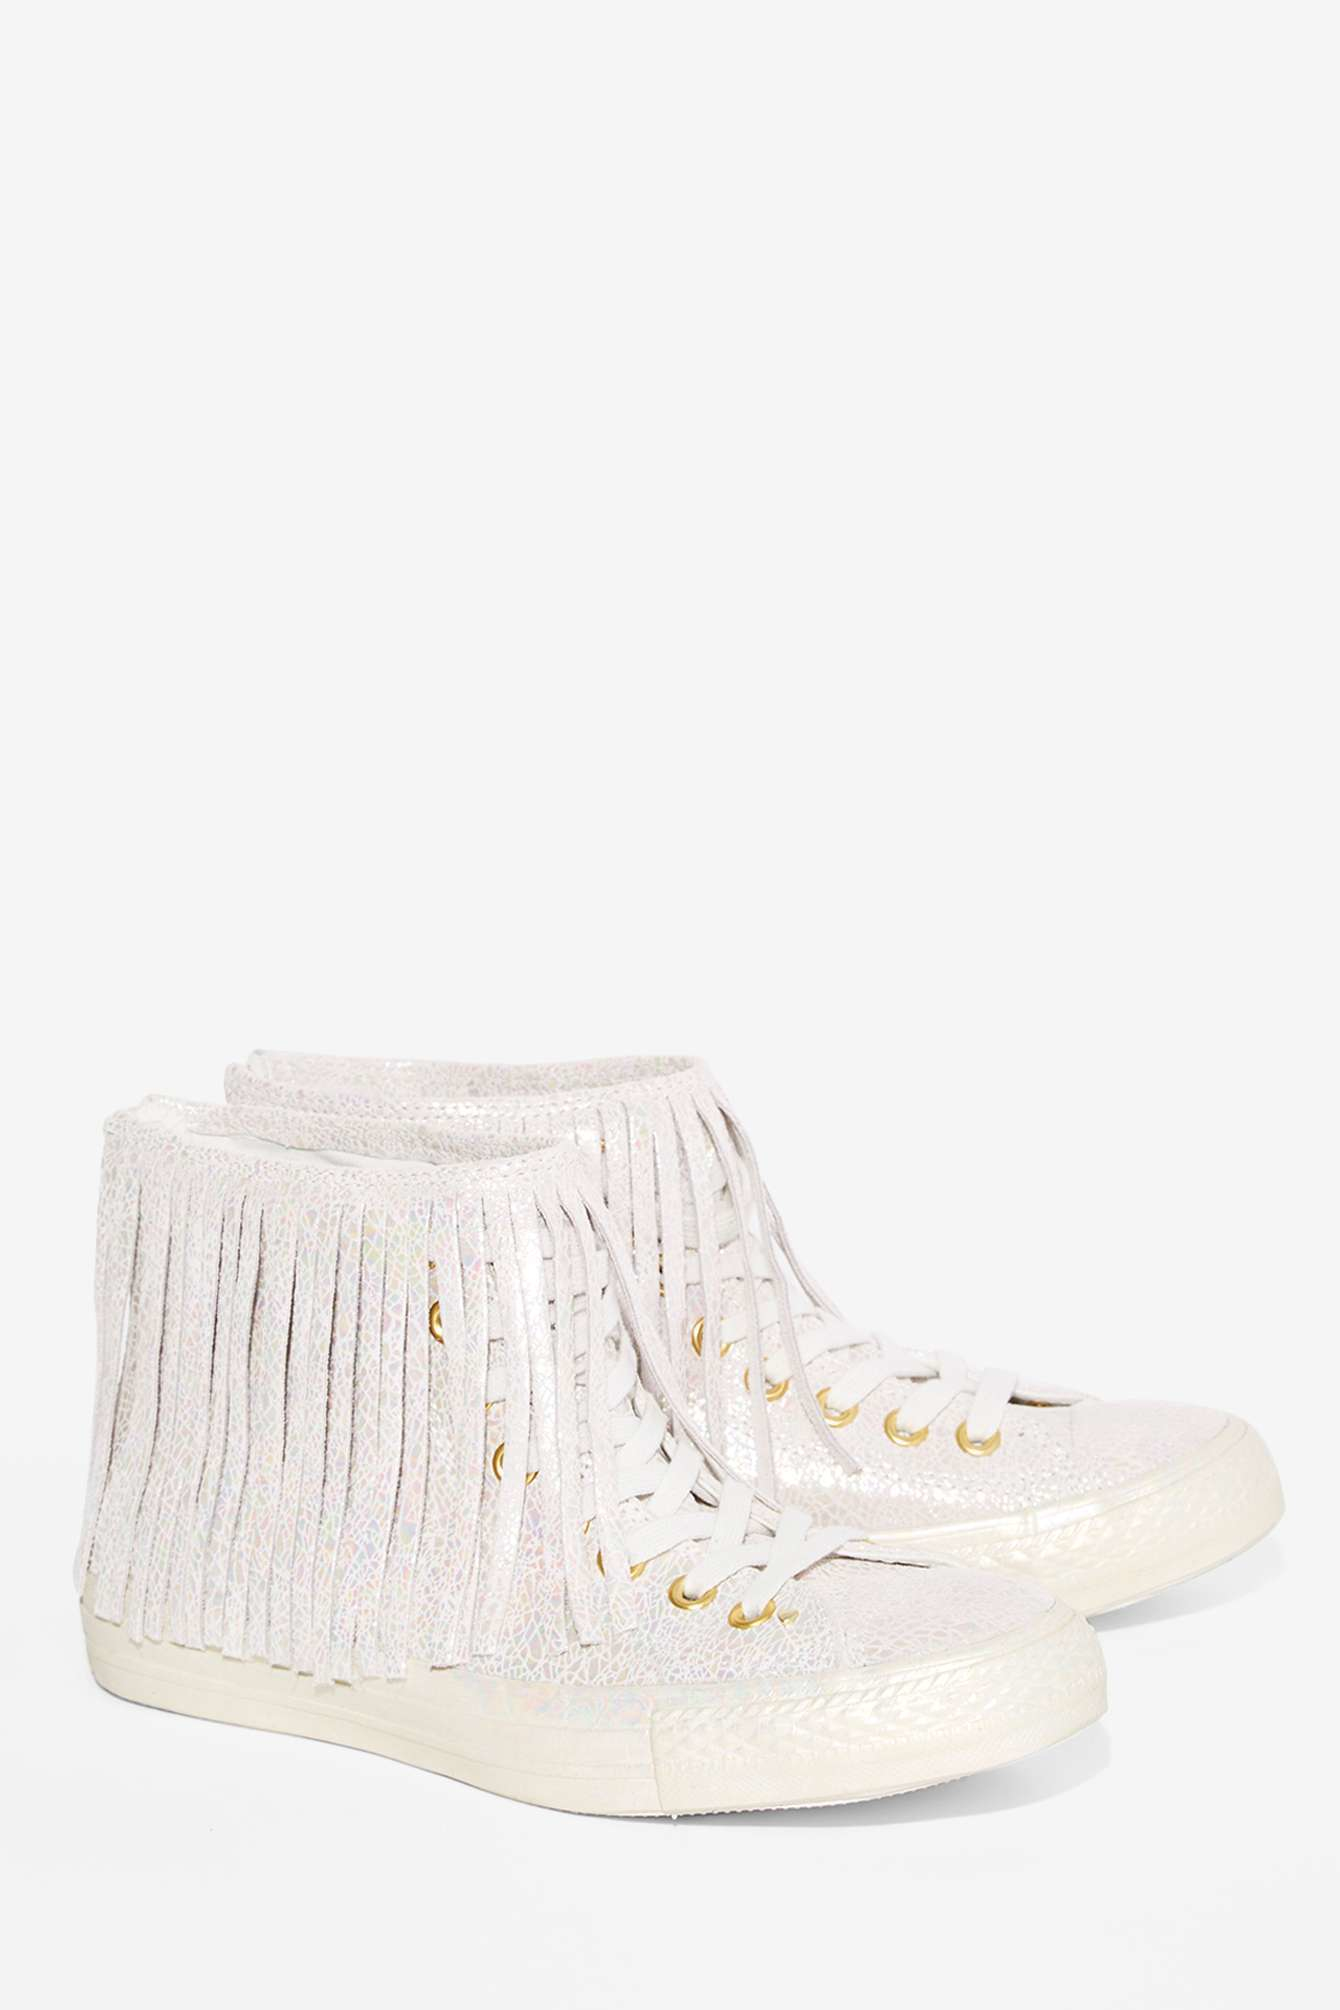 d639033270b7 Lyst - Converse All Star Fringe High-top Leather Sneaker ...